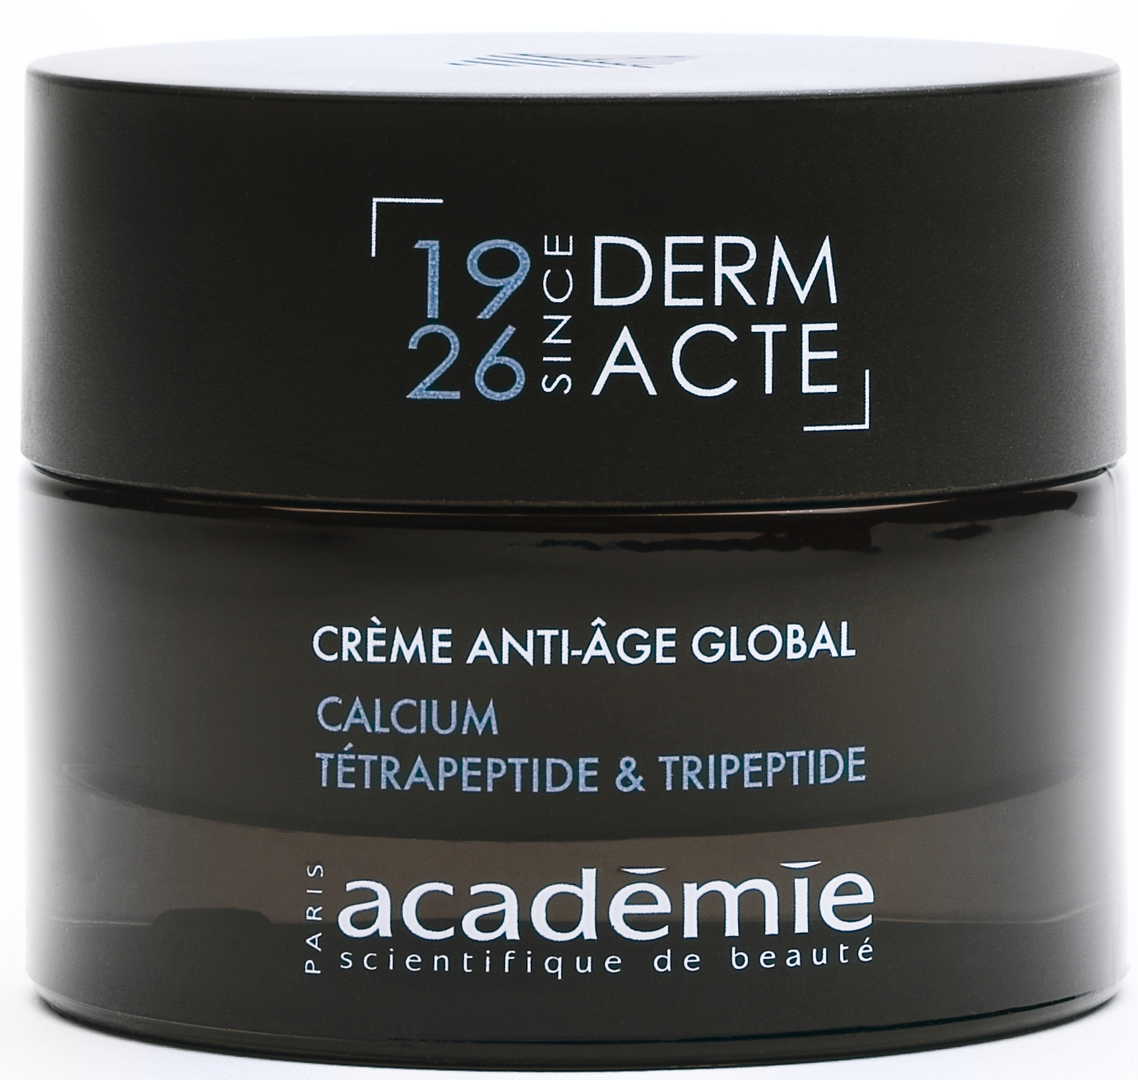 acad mie derm acte intense age recovery cream 50 ml. Black Bedroom Furniture Sets. Home Design Ideas